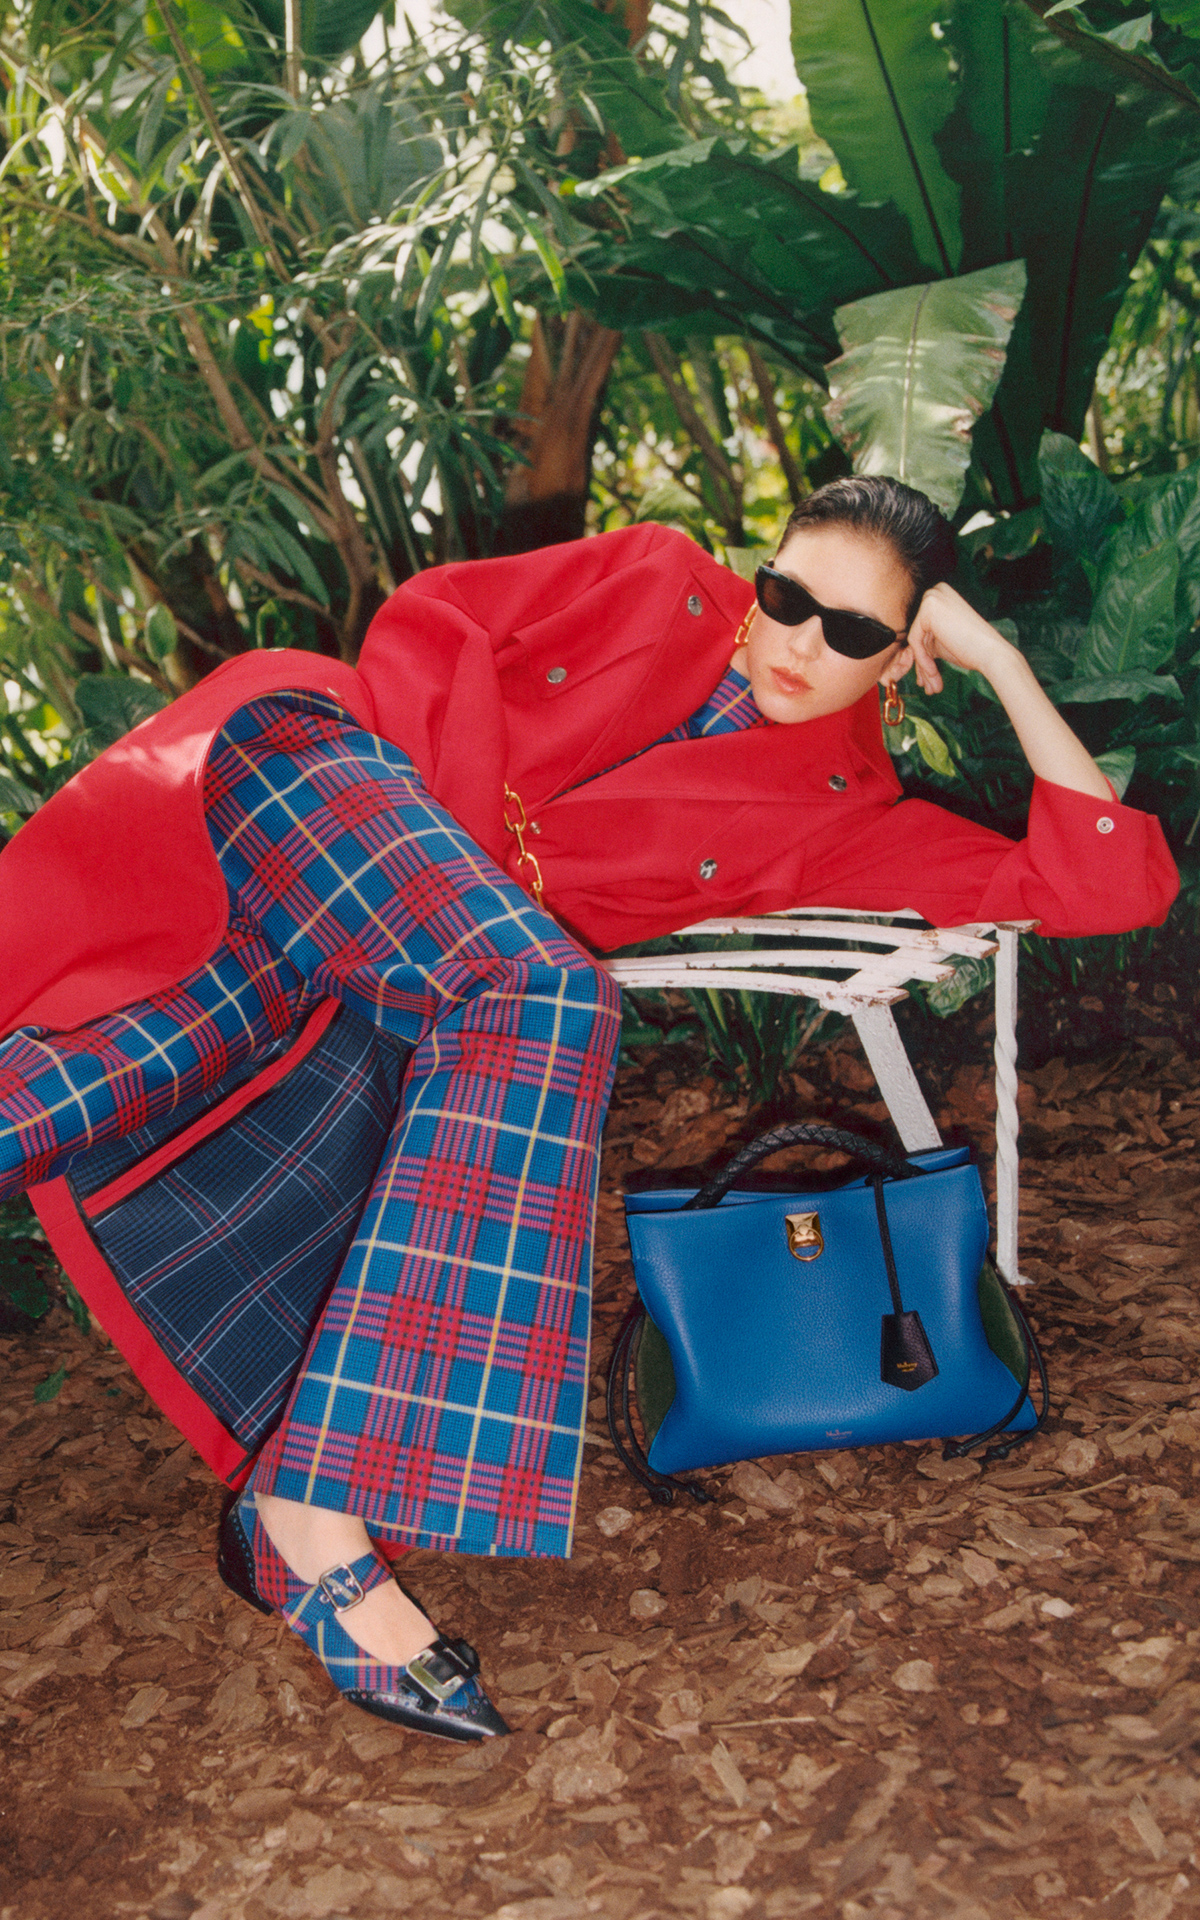 Mulberry Bicester Village hero brand image lady in red